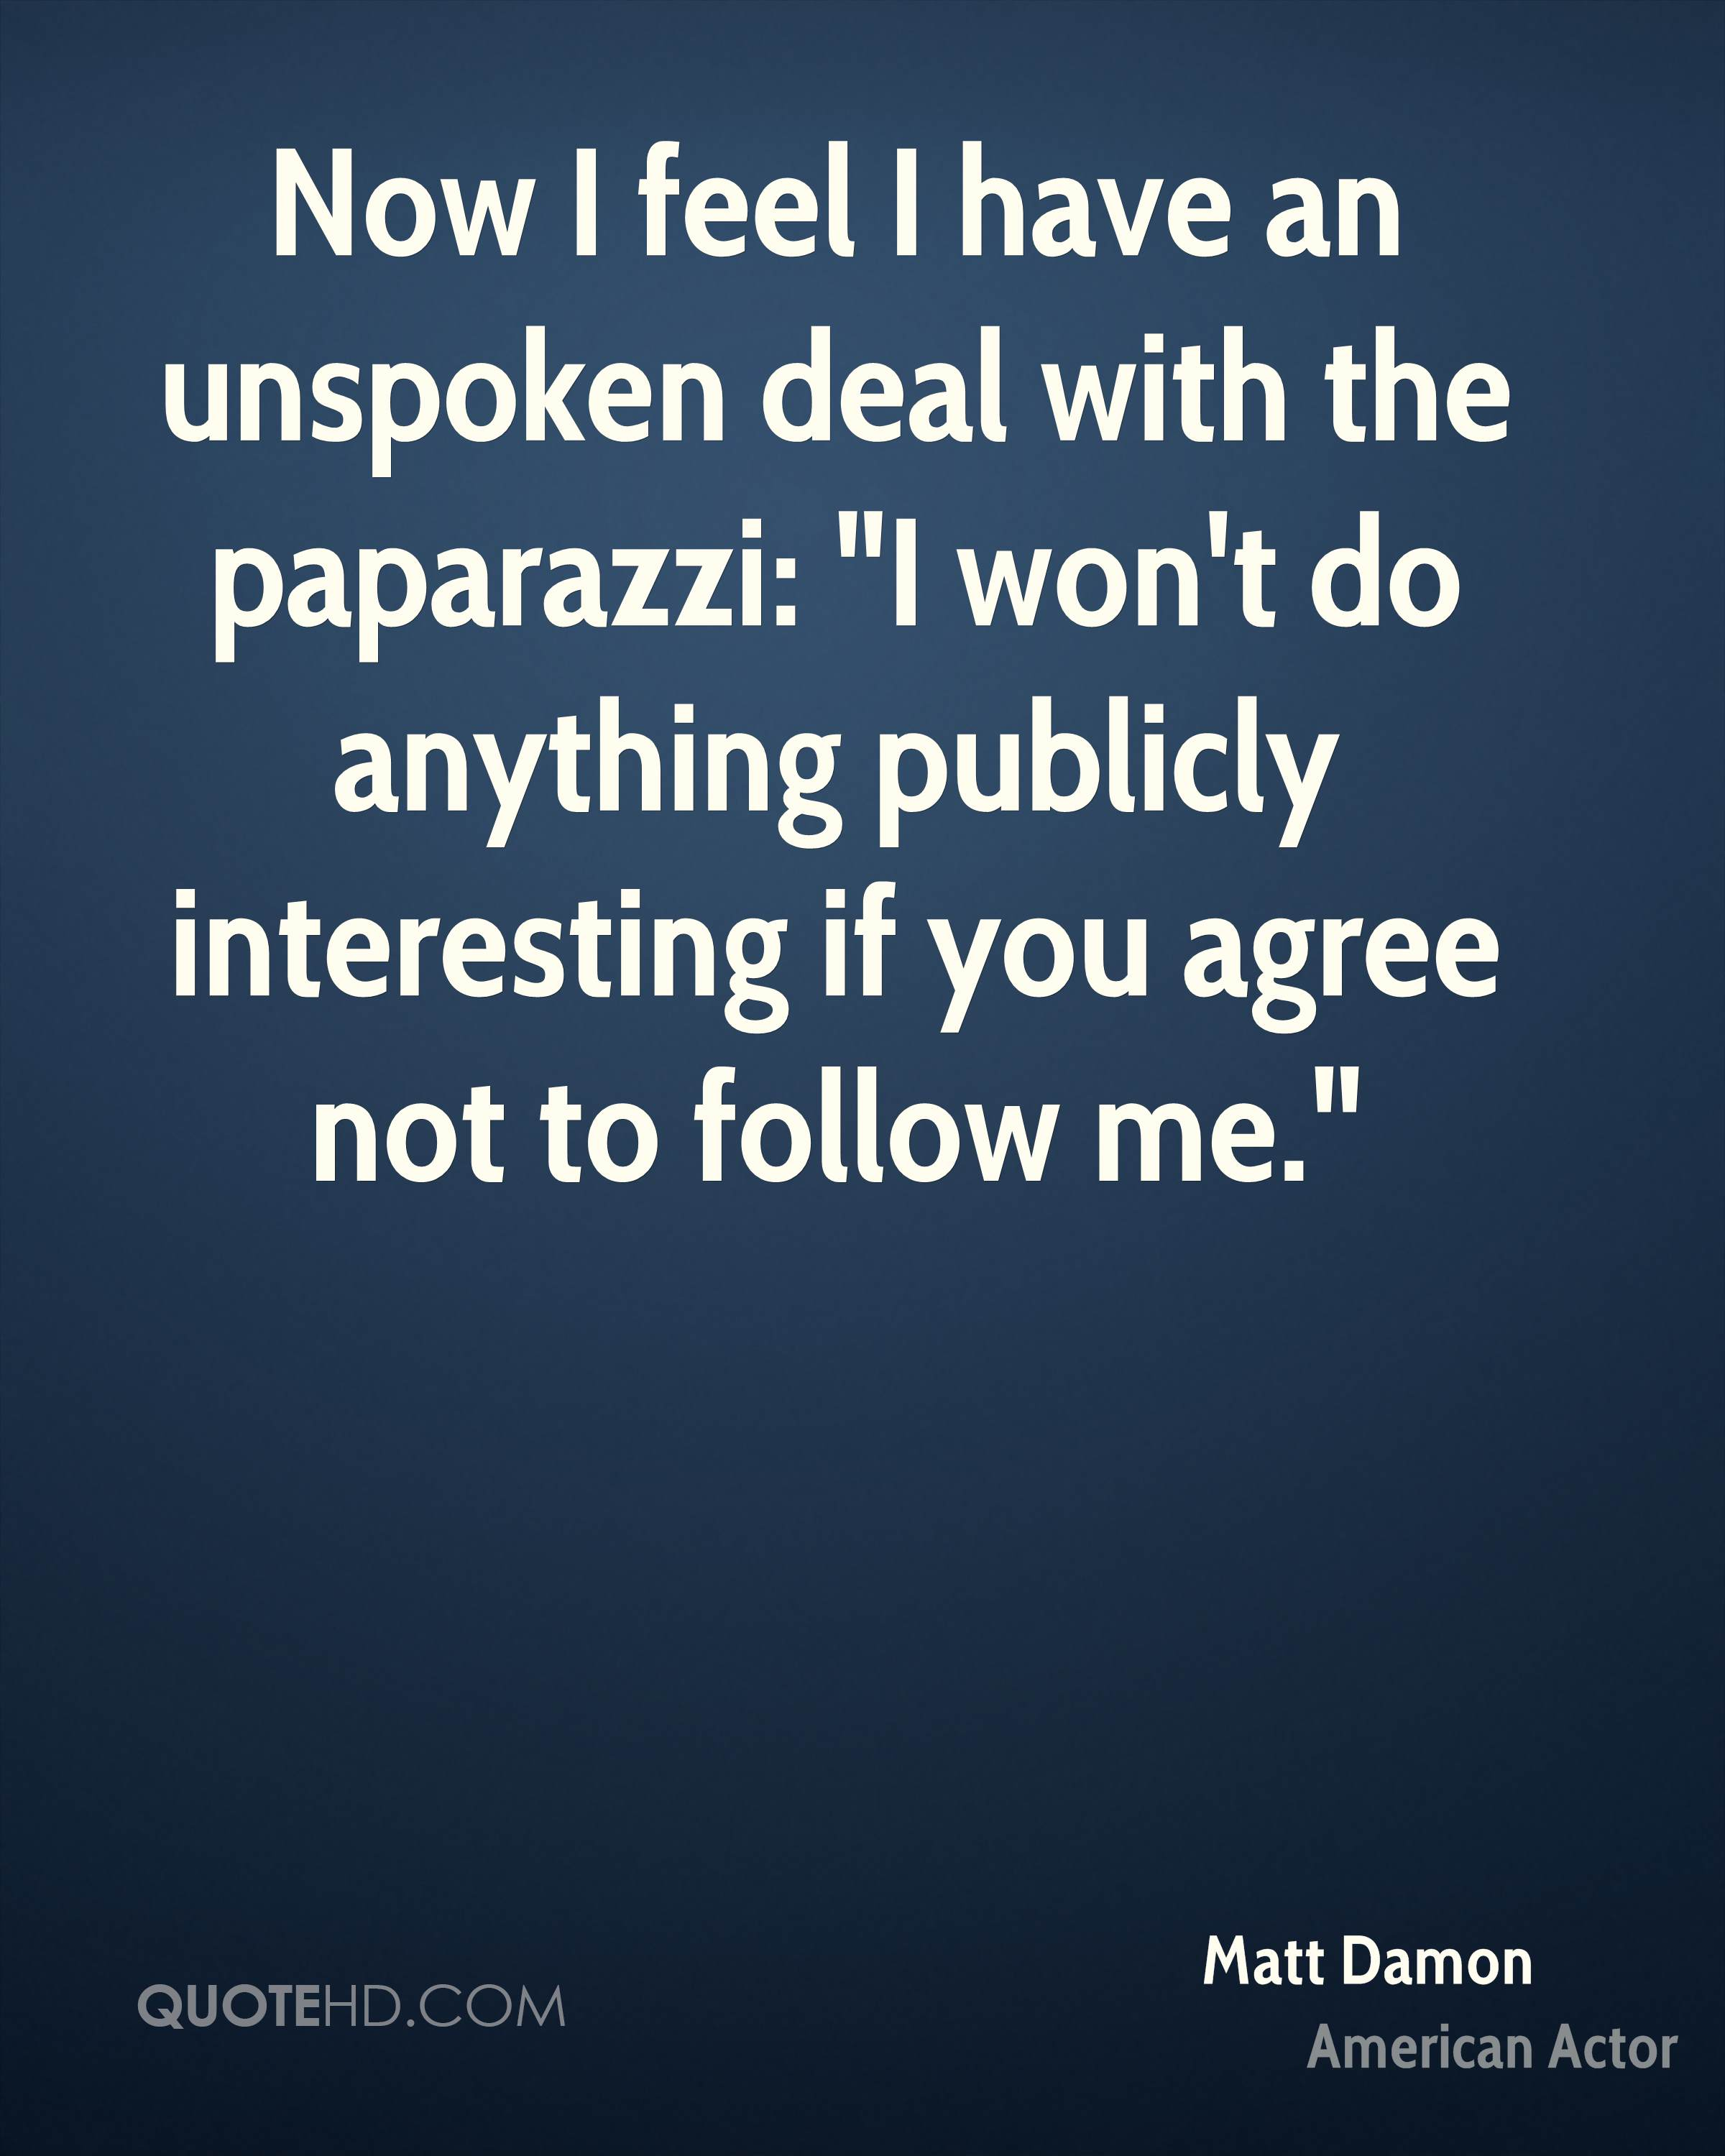 """Now I feel I have an unspoken deal with the paparazzi: """"I won't do anything publicly interesting if you agree not to follow me."""""""